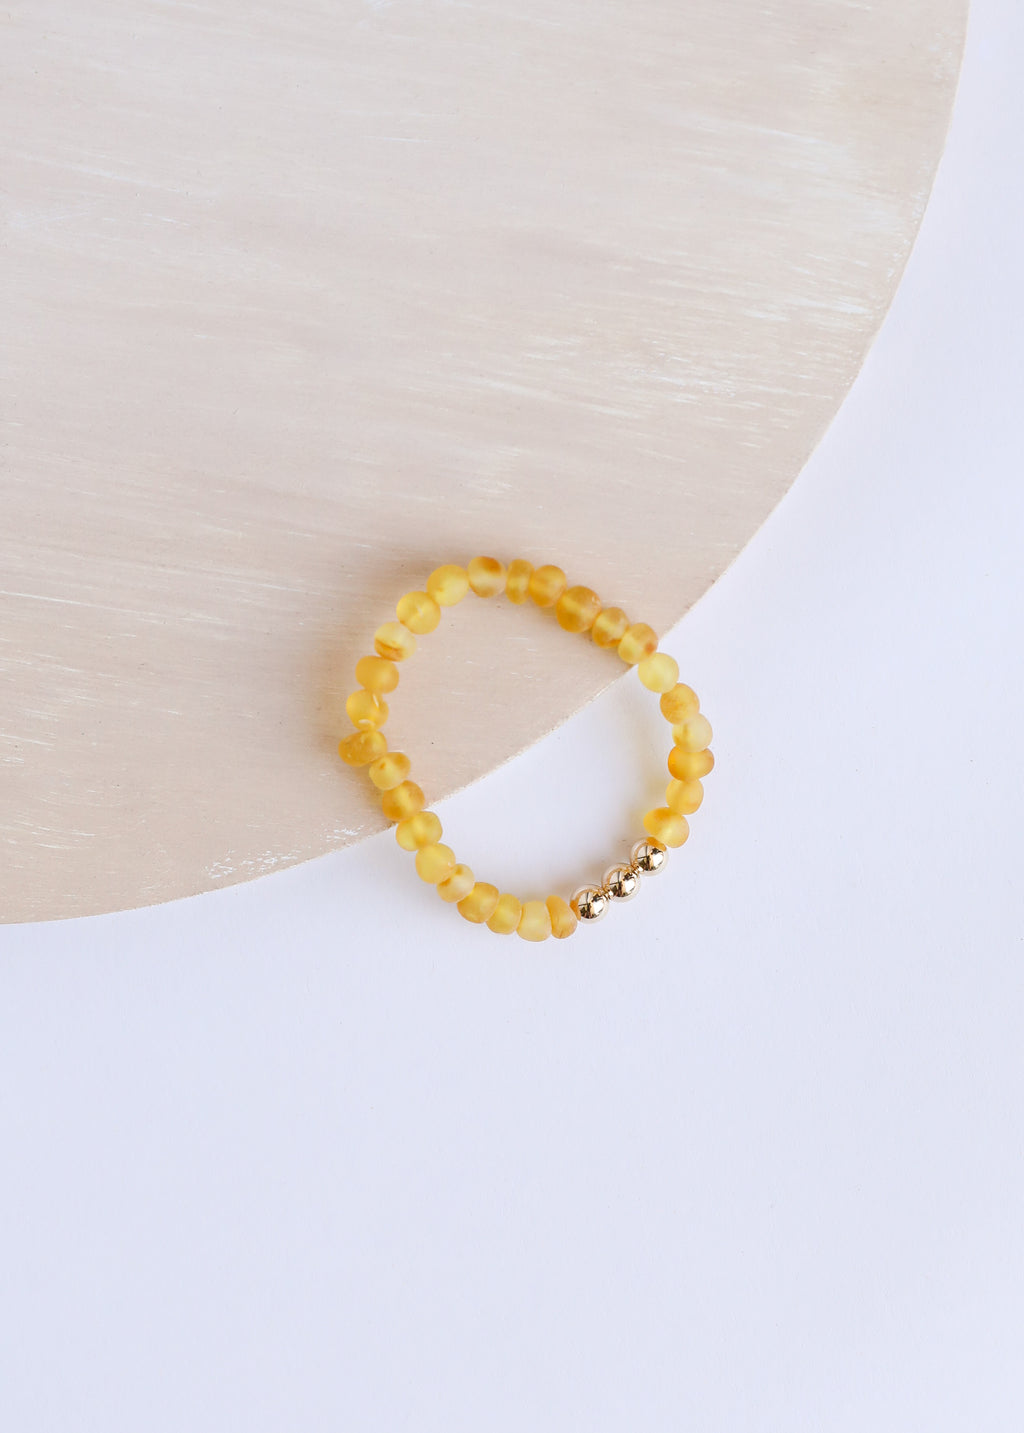 Raw Honey Amber + 14k Gold || Adult Bracelet